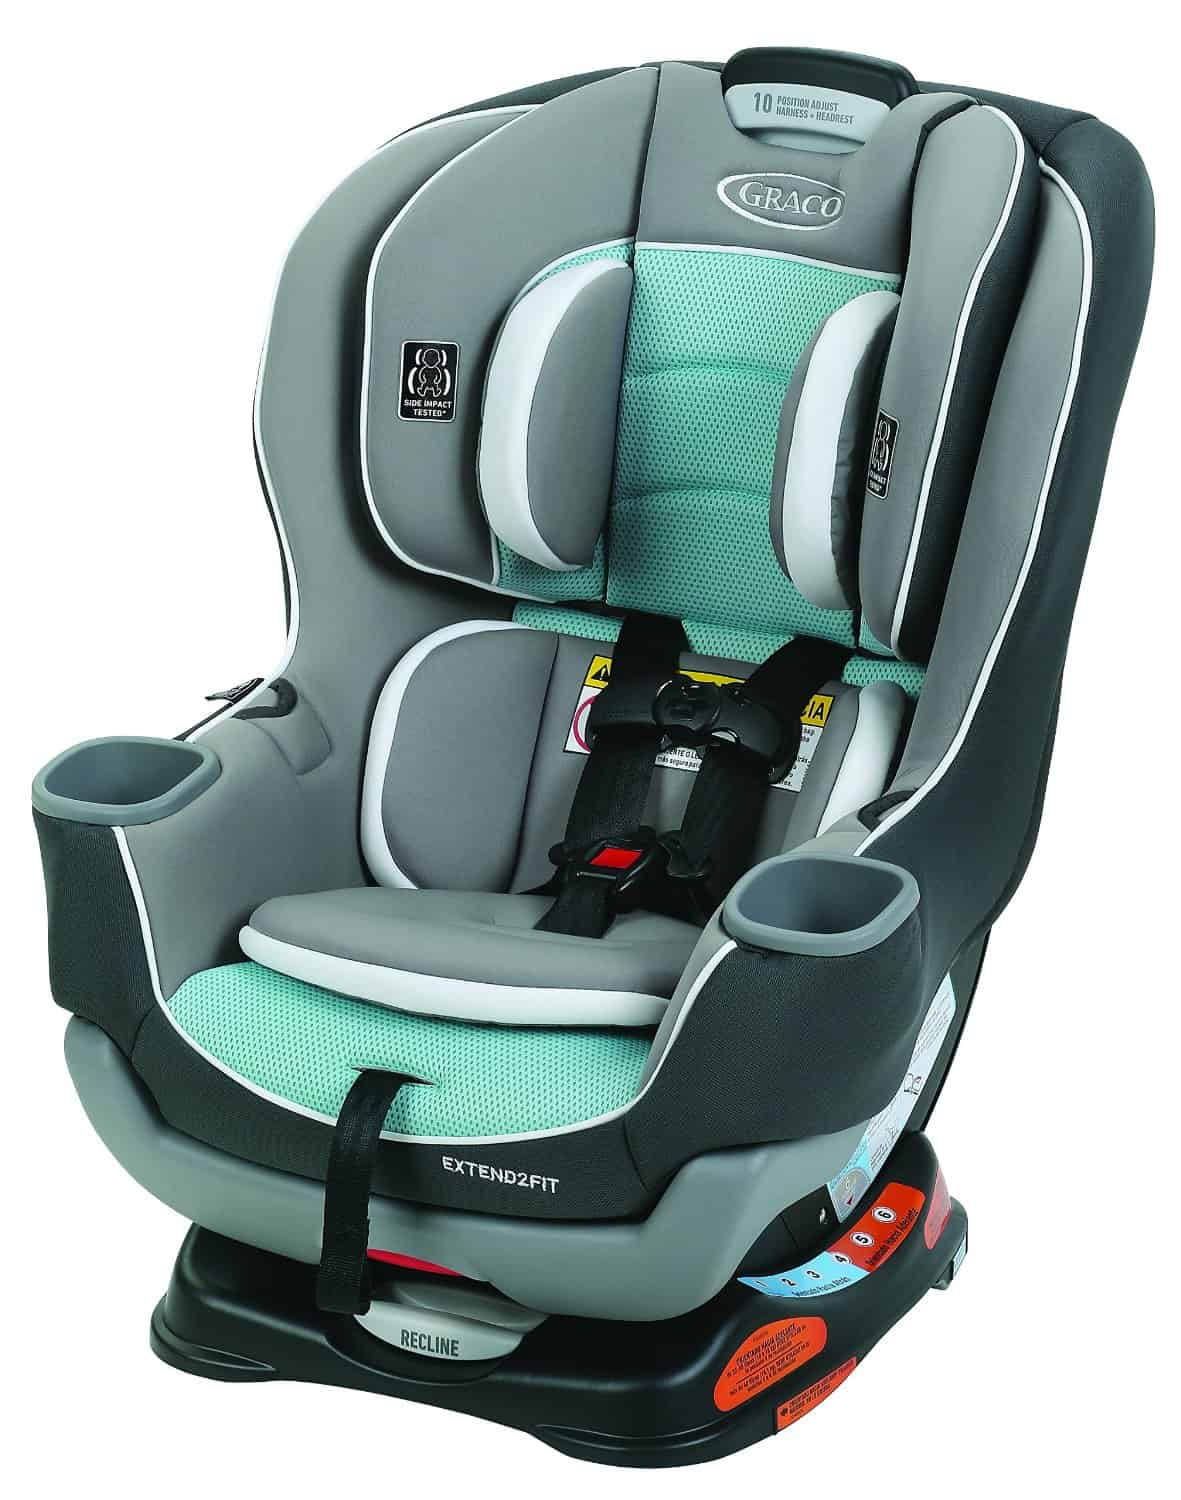 Convertible Car Seat Review: Graco Extend2Fit